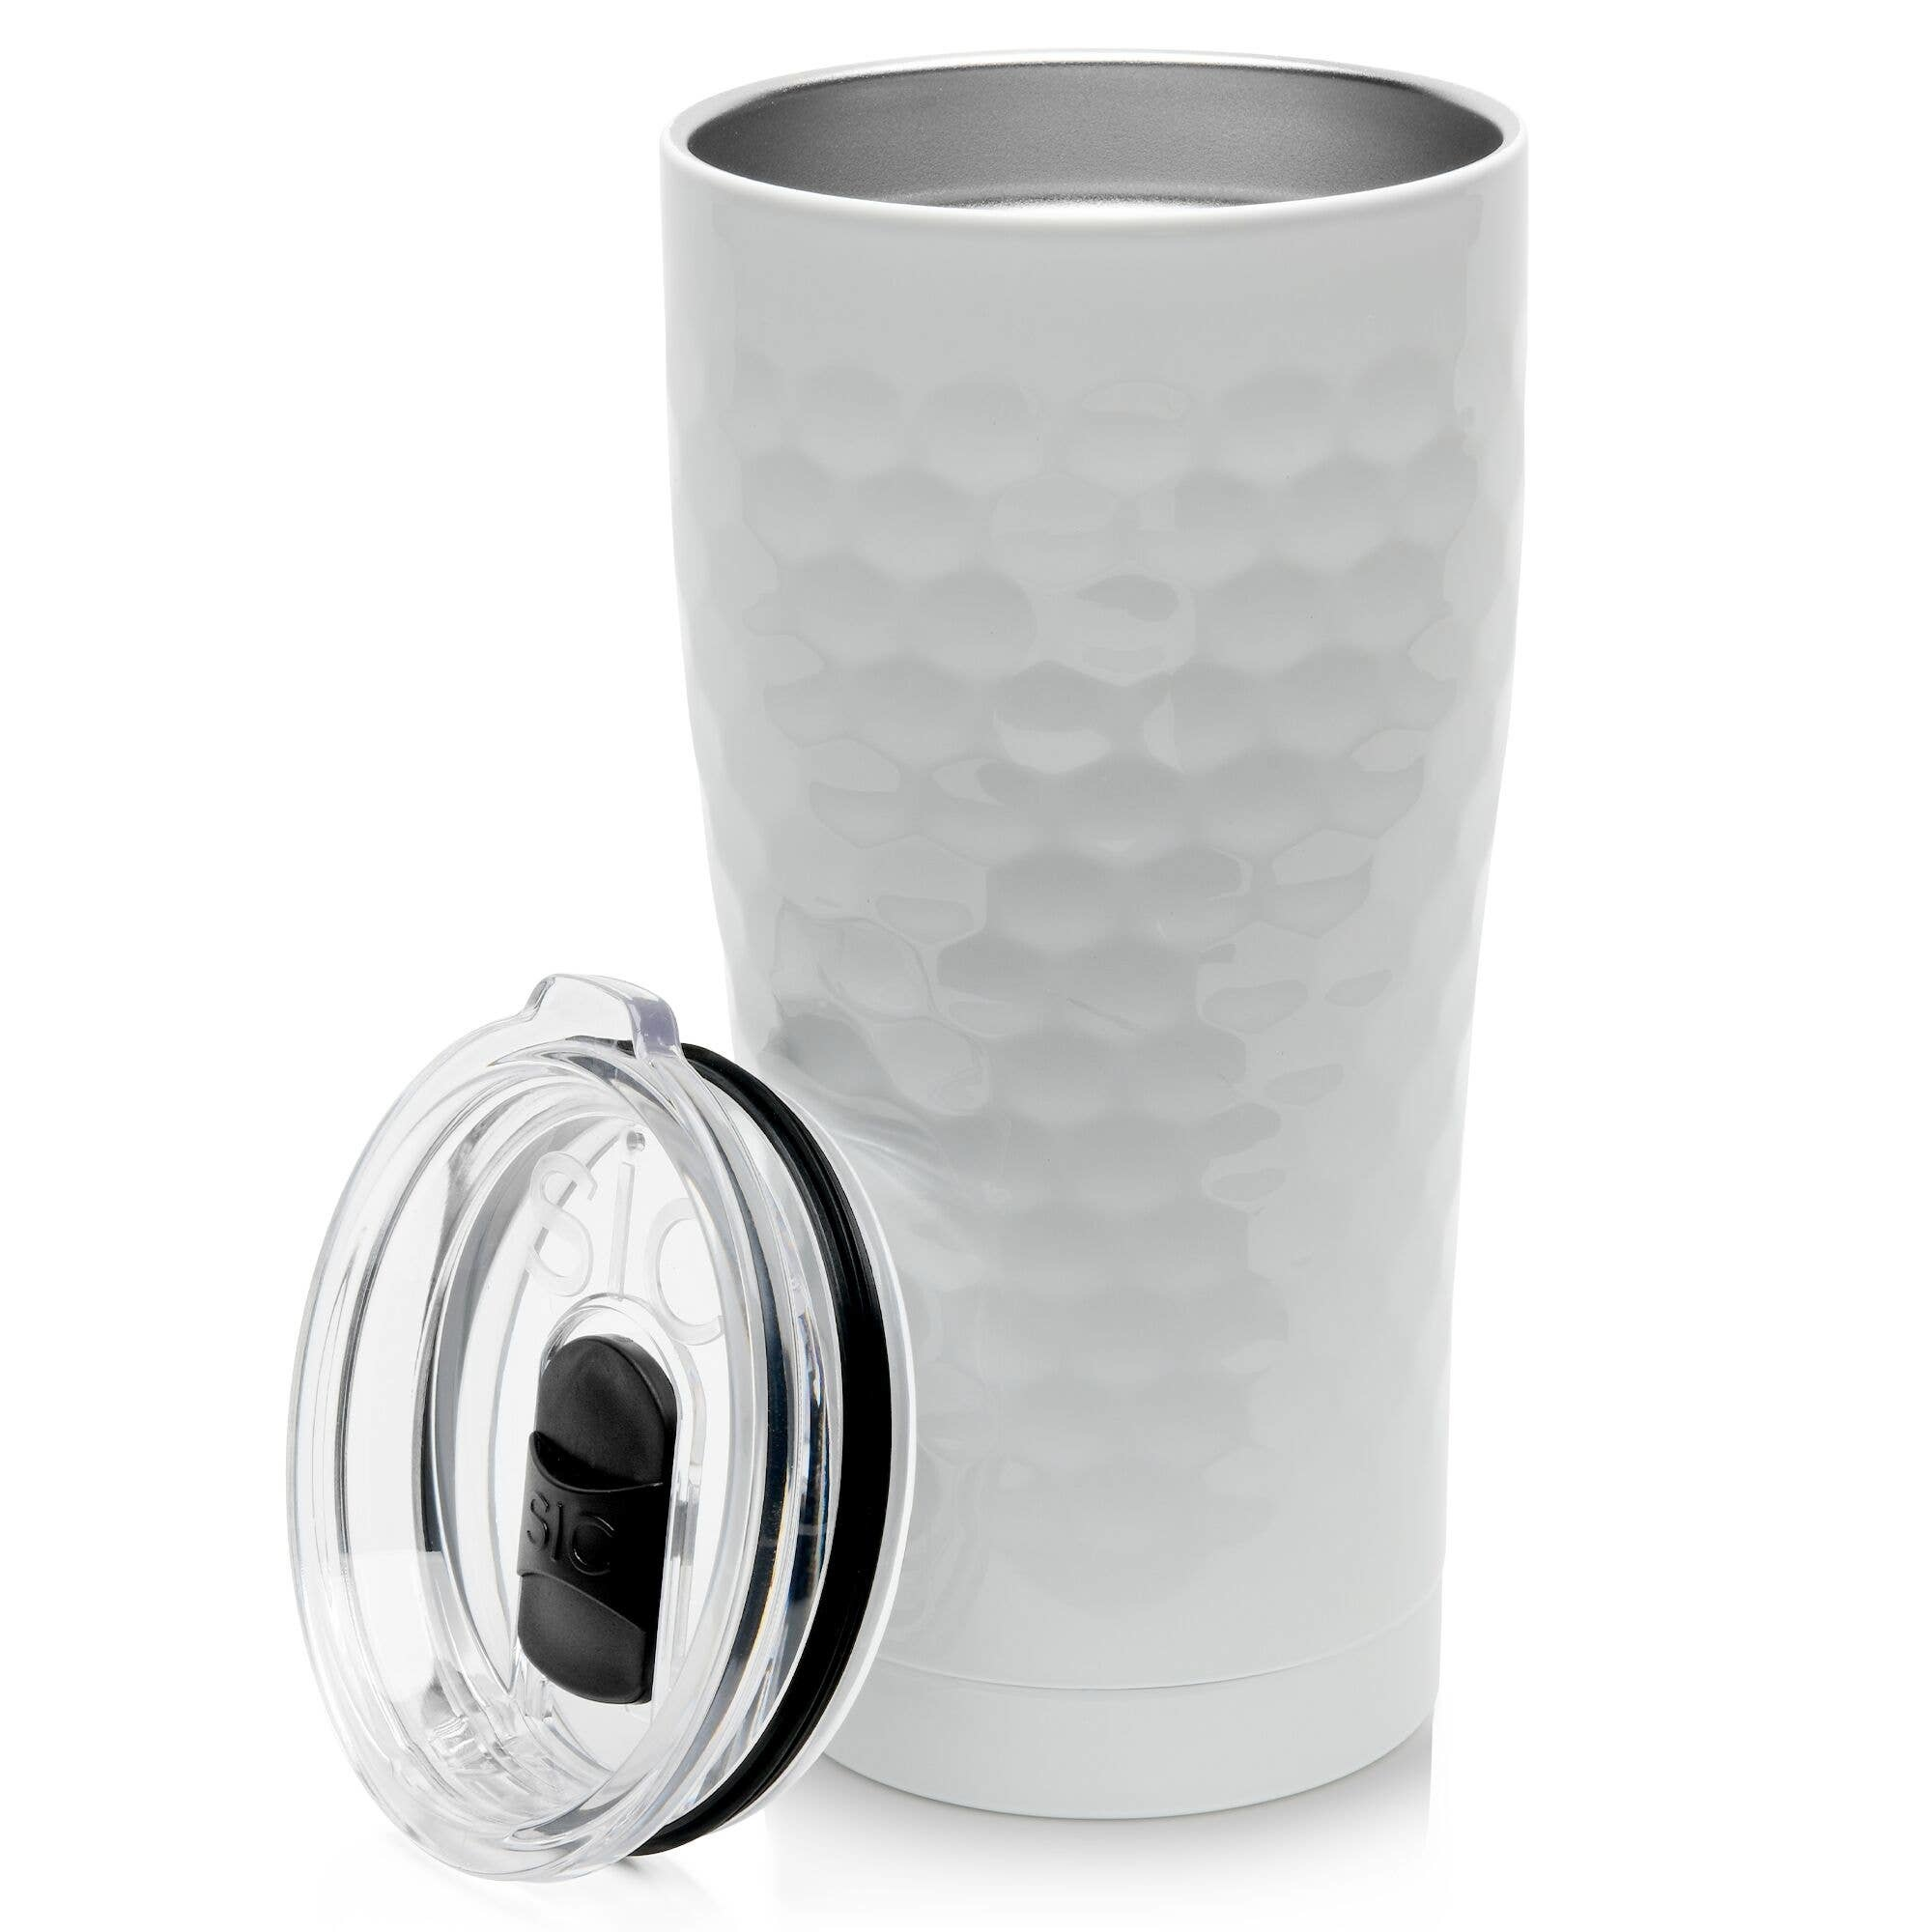 SIC 20 oz Dimpled Golf Tumbler, Stainless Steel, SIC